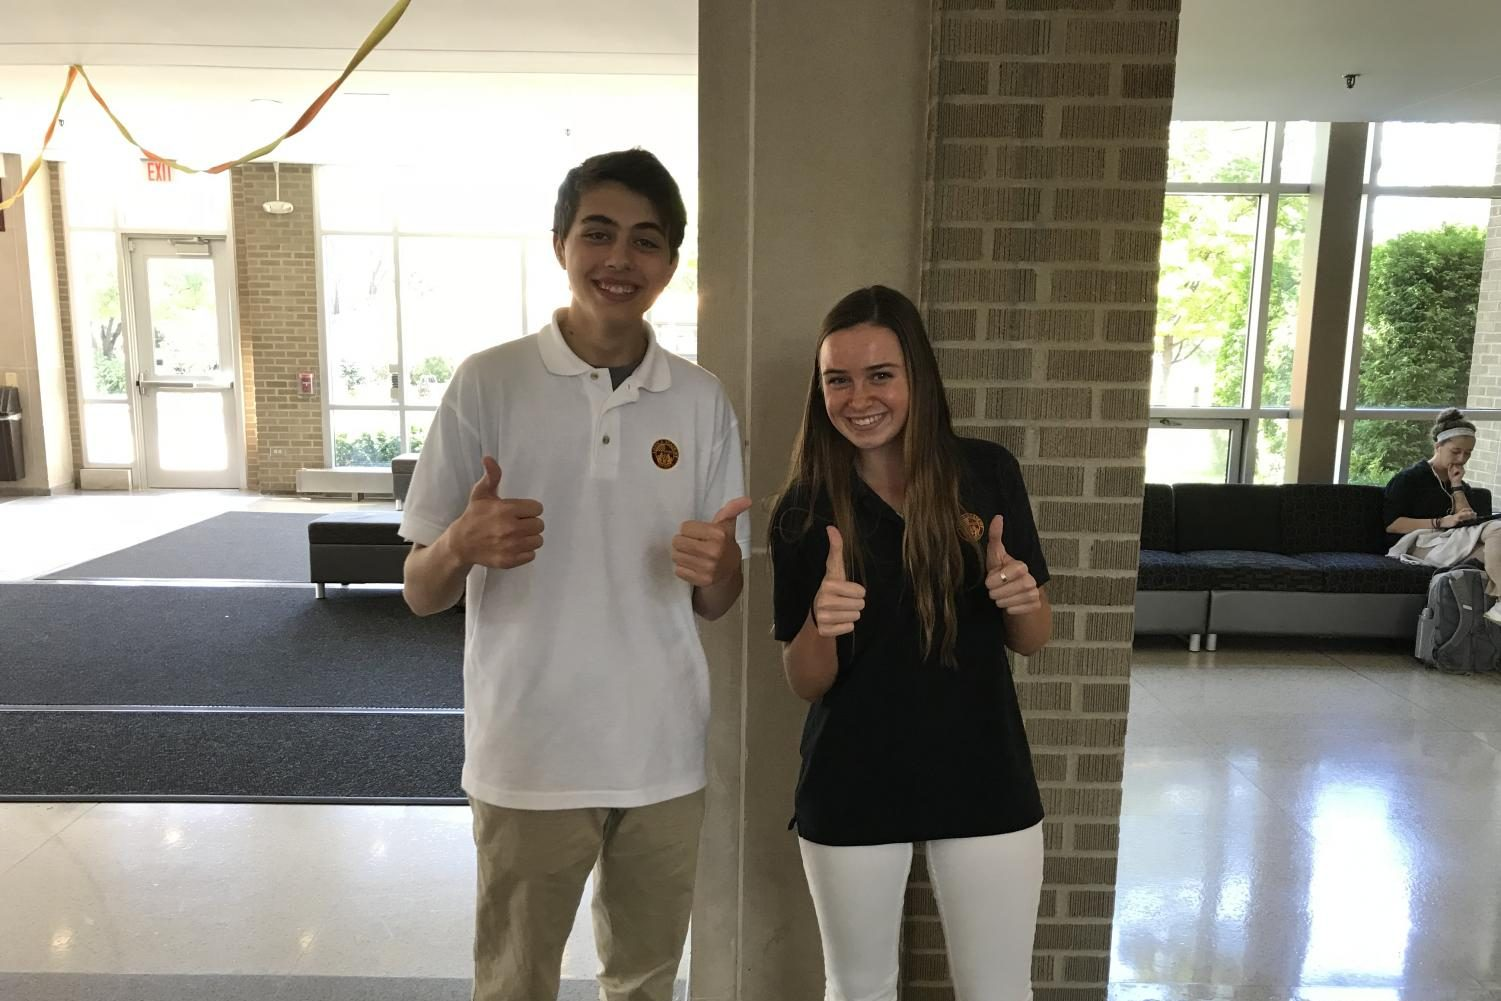 Matthew Kelsh and Frannie Whelan give a thumbs up to the environment.